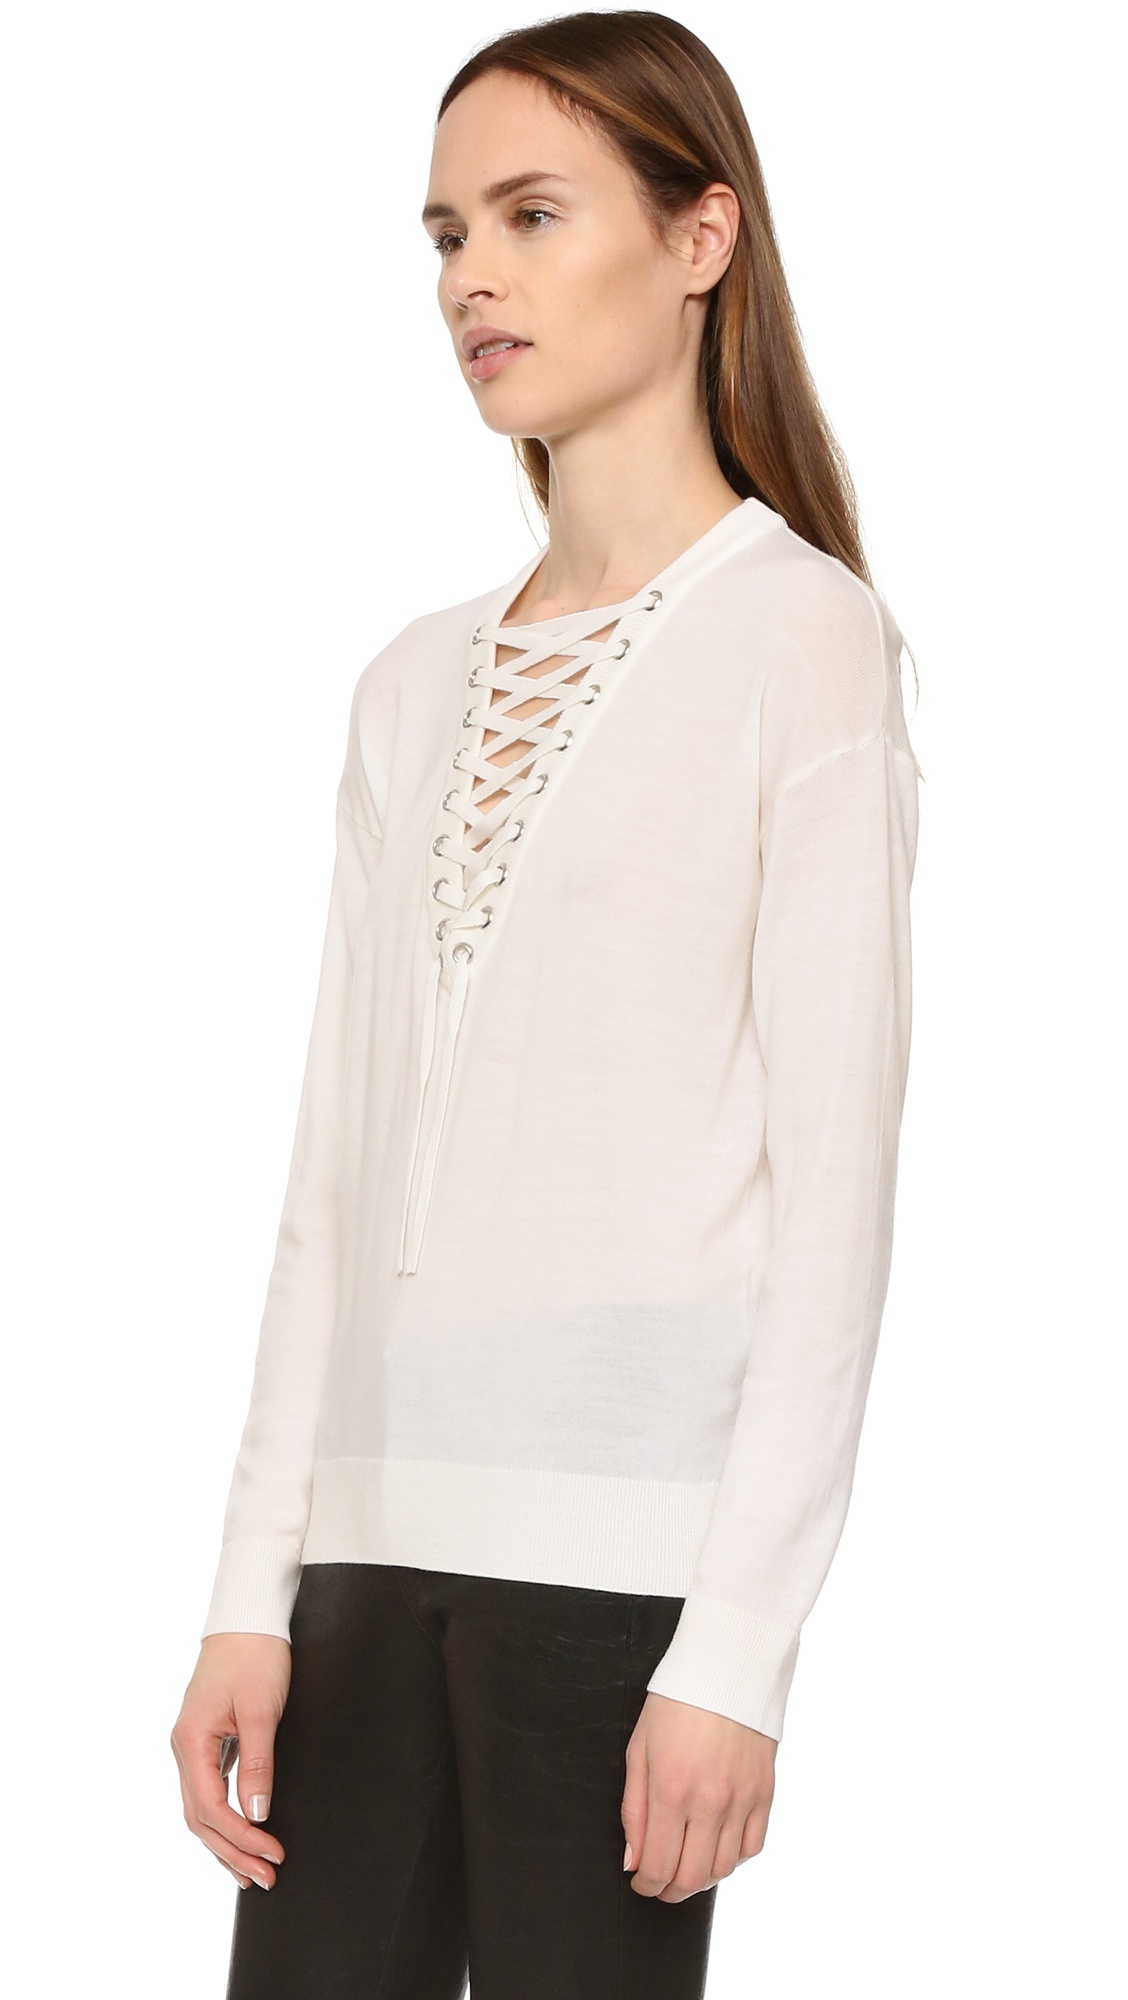 0c625d9786 Lyst - The Kooples Lace Up Merino Top in White